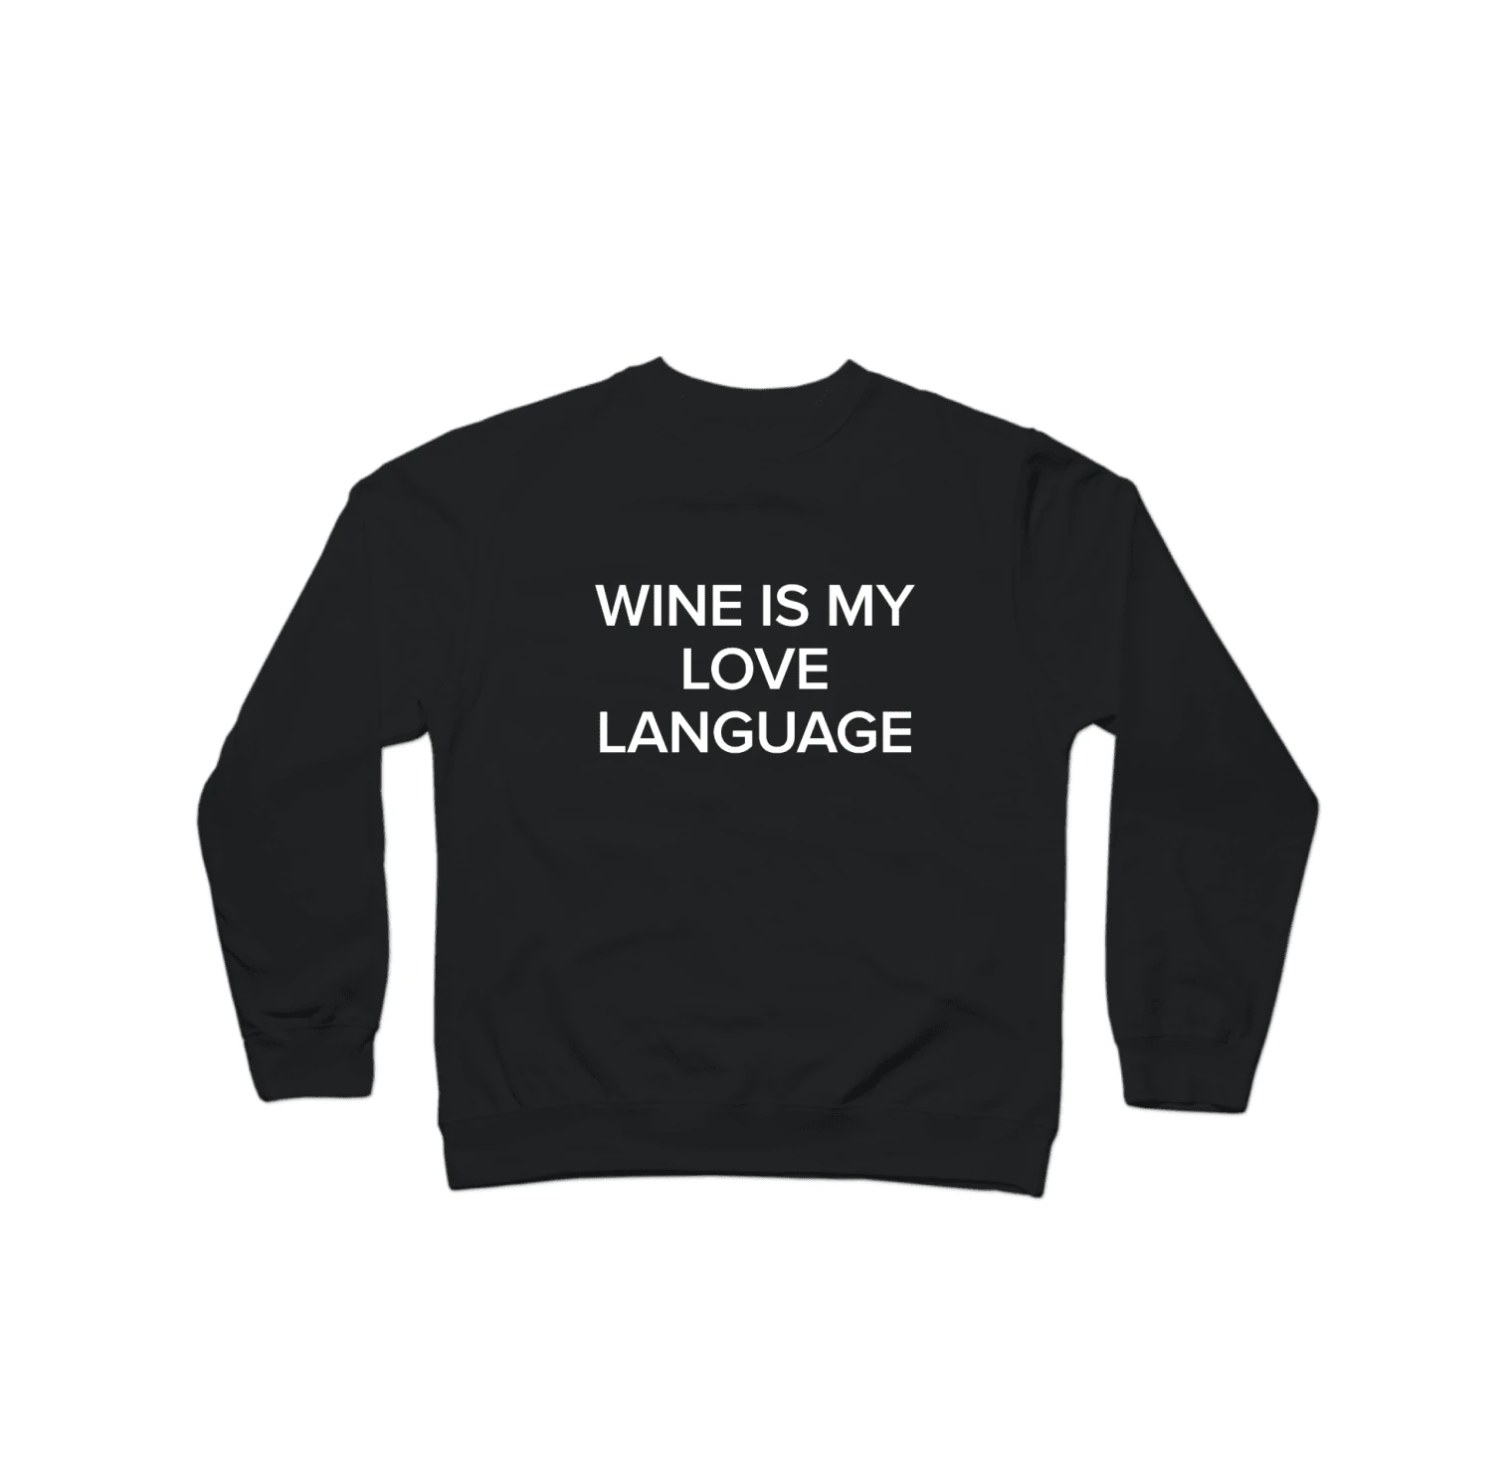 "The sweatshirt in black that says ""wine is my love language"""